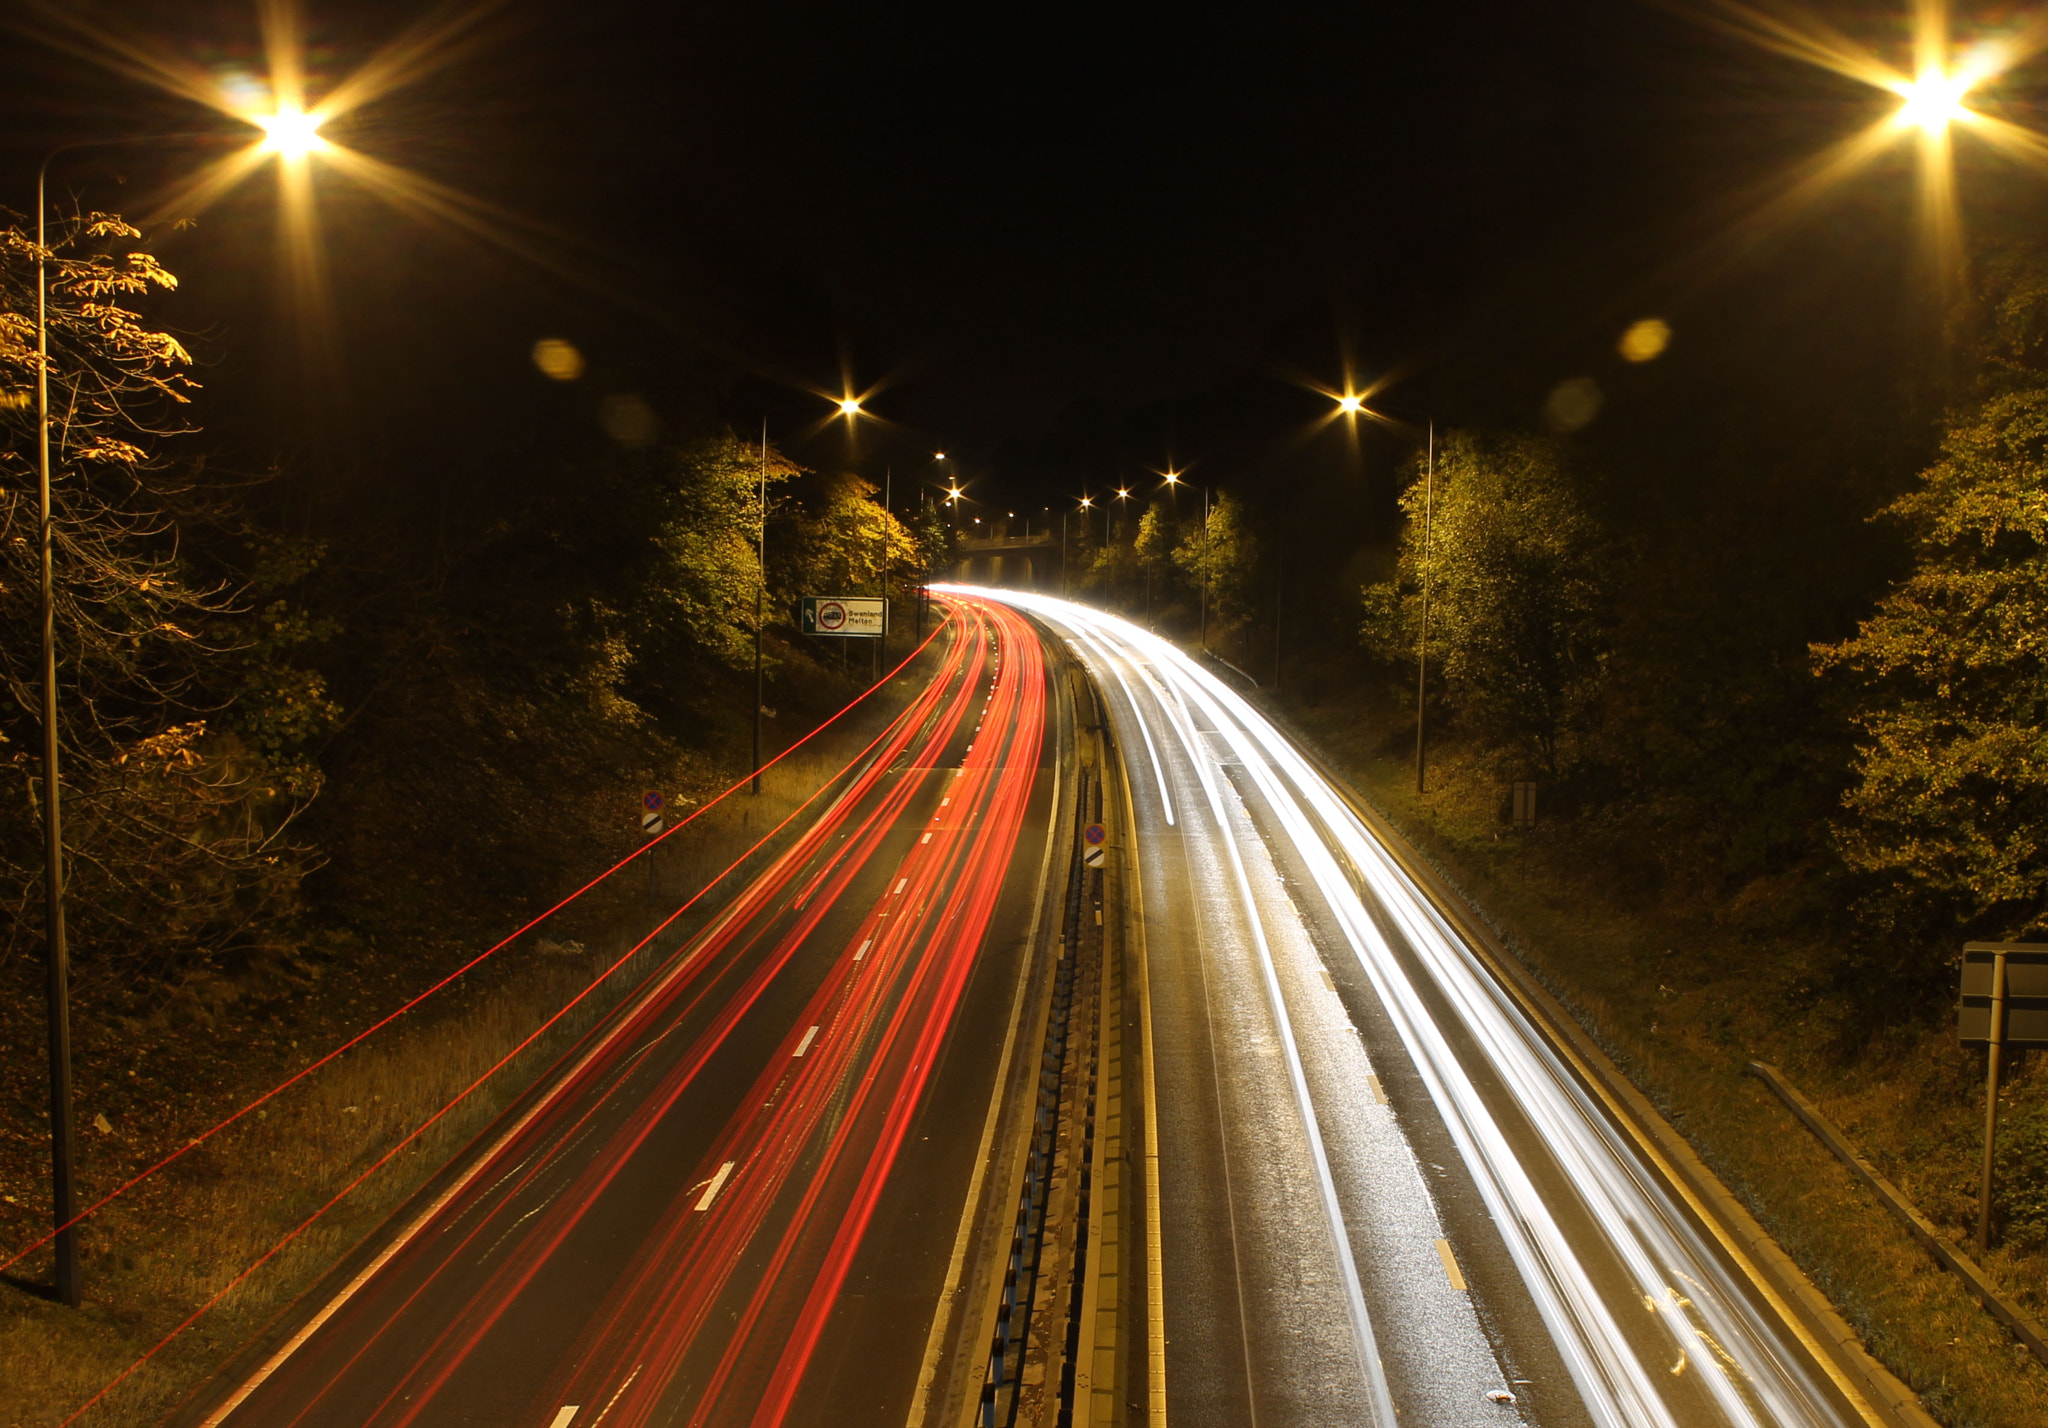 Photograph Night Traffic by Mark Brindle on 500px